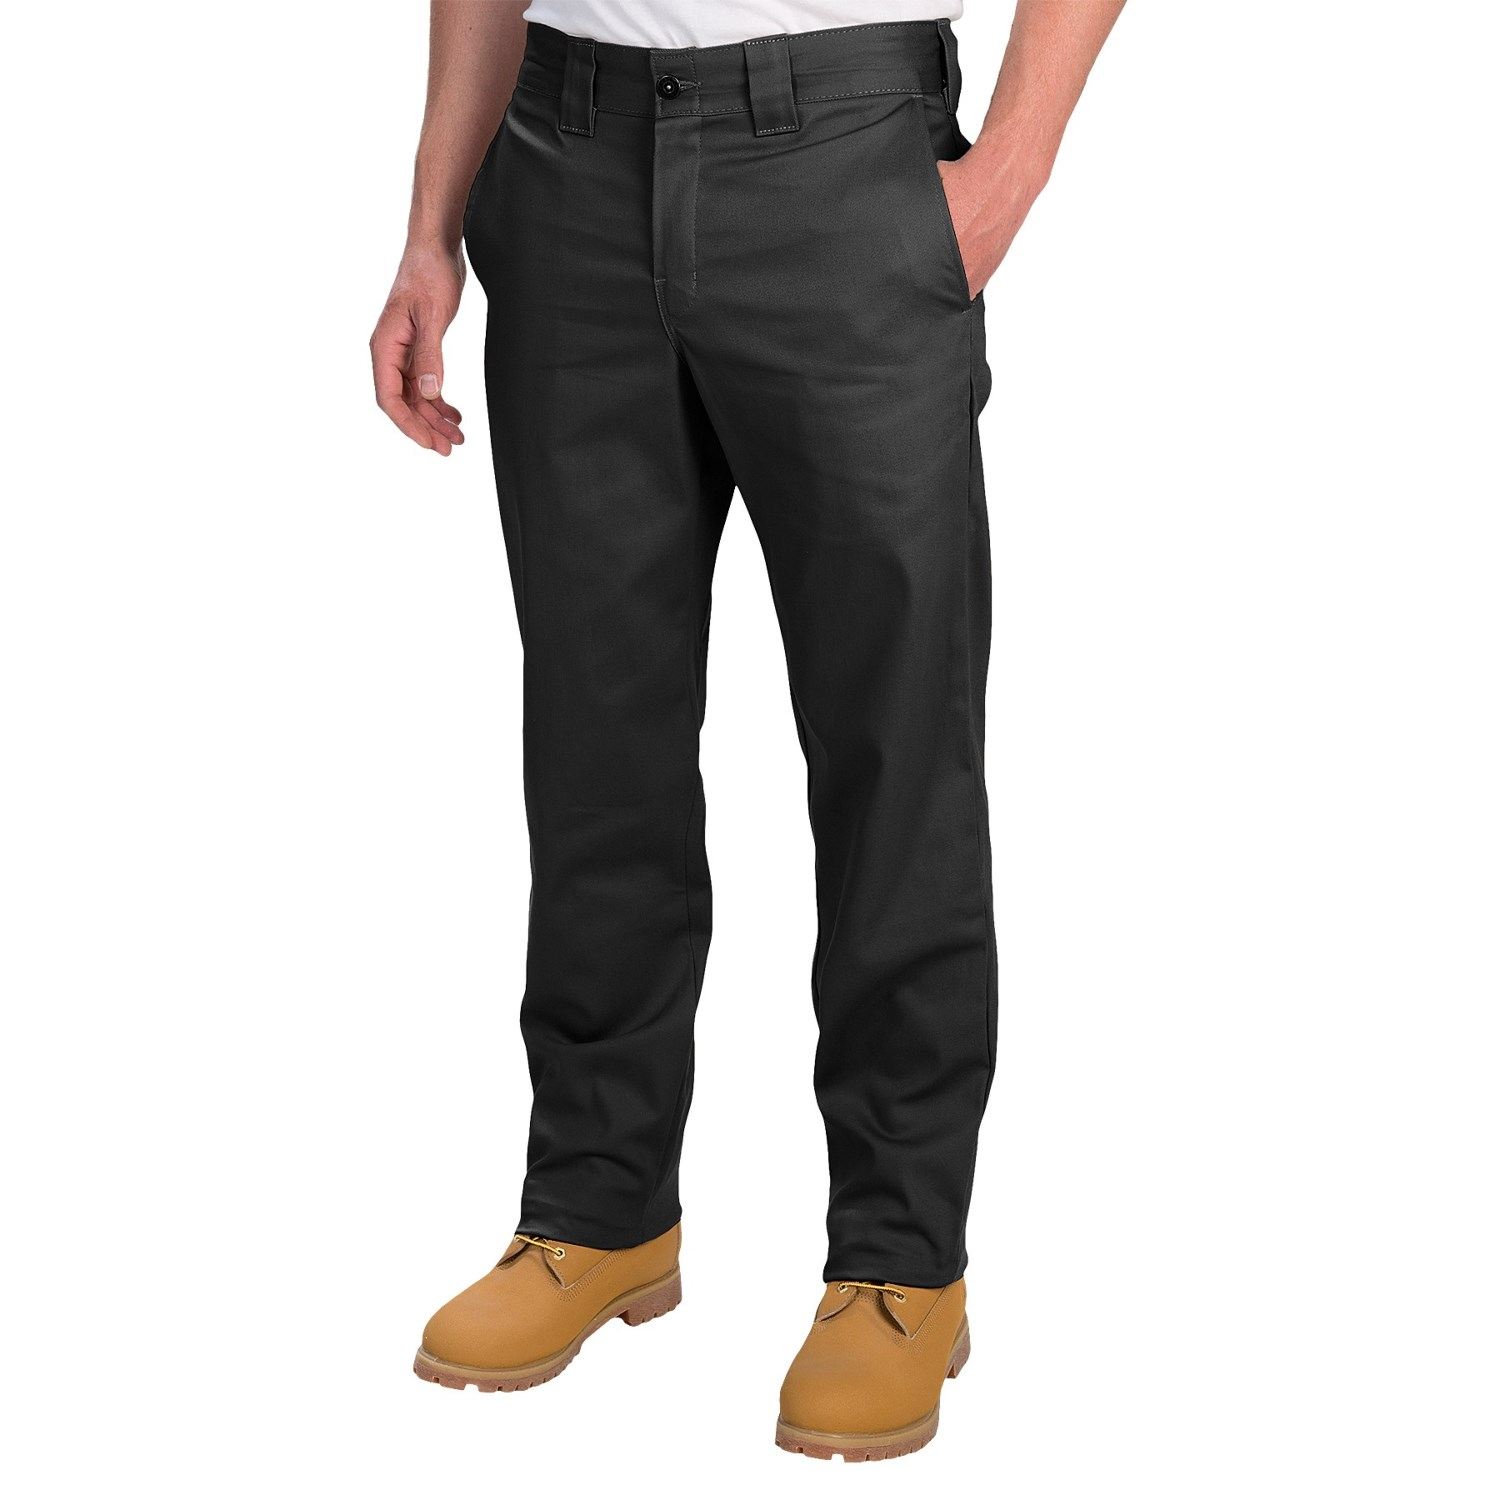 Cheap work pants - Review of Dickies Work Pants - Tapered Leg (For